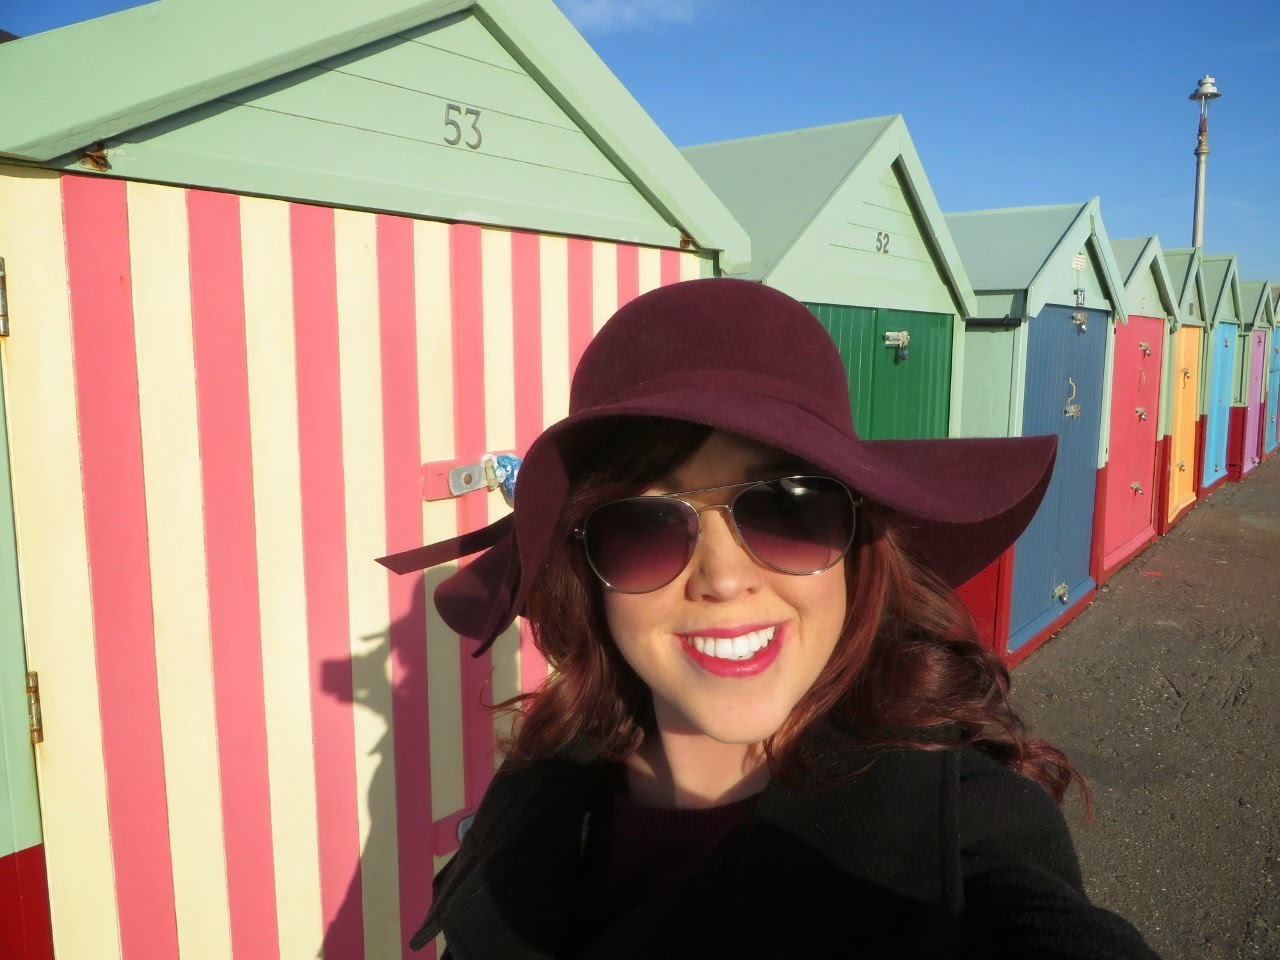 Erins Ever After, Erin's Ever After, Erinseverafter, Brighton, Beach huts, sun, floppy hat